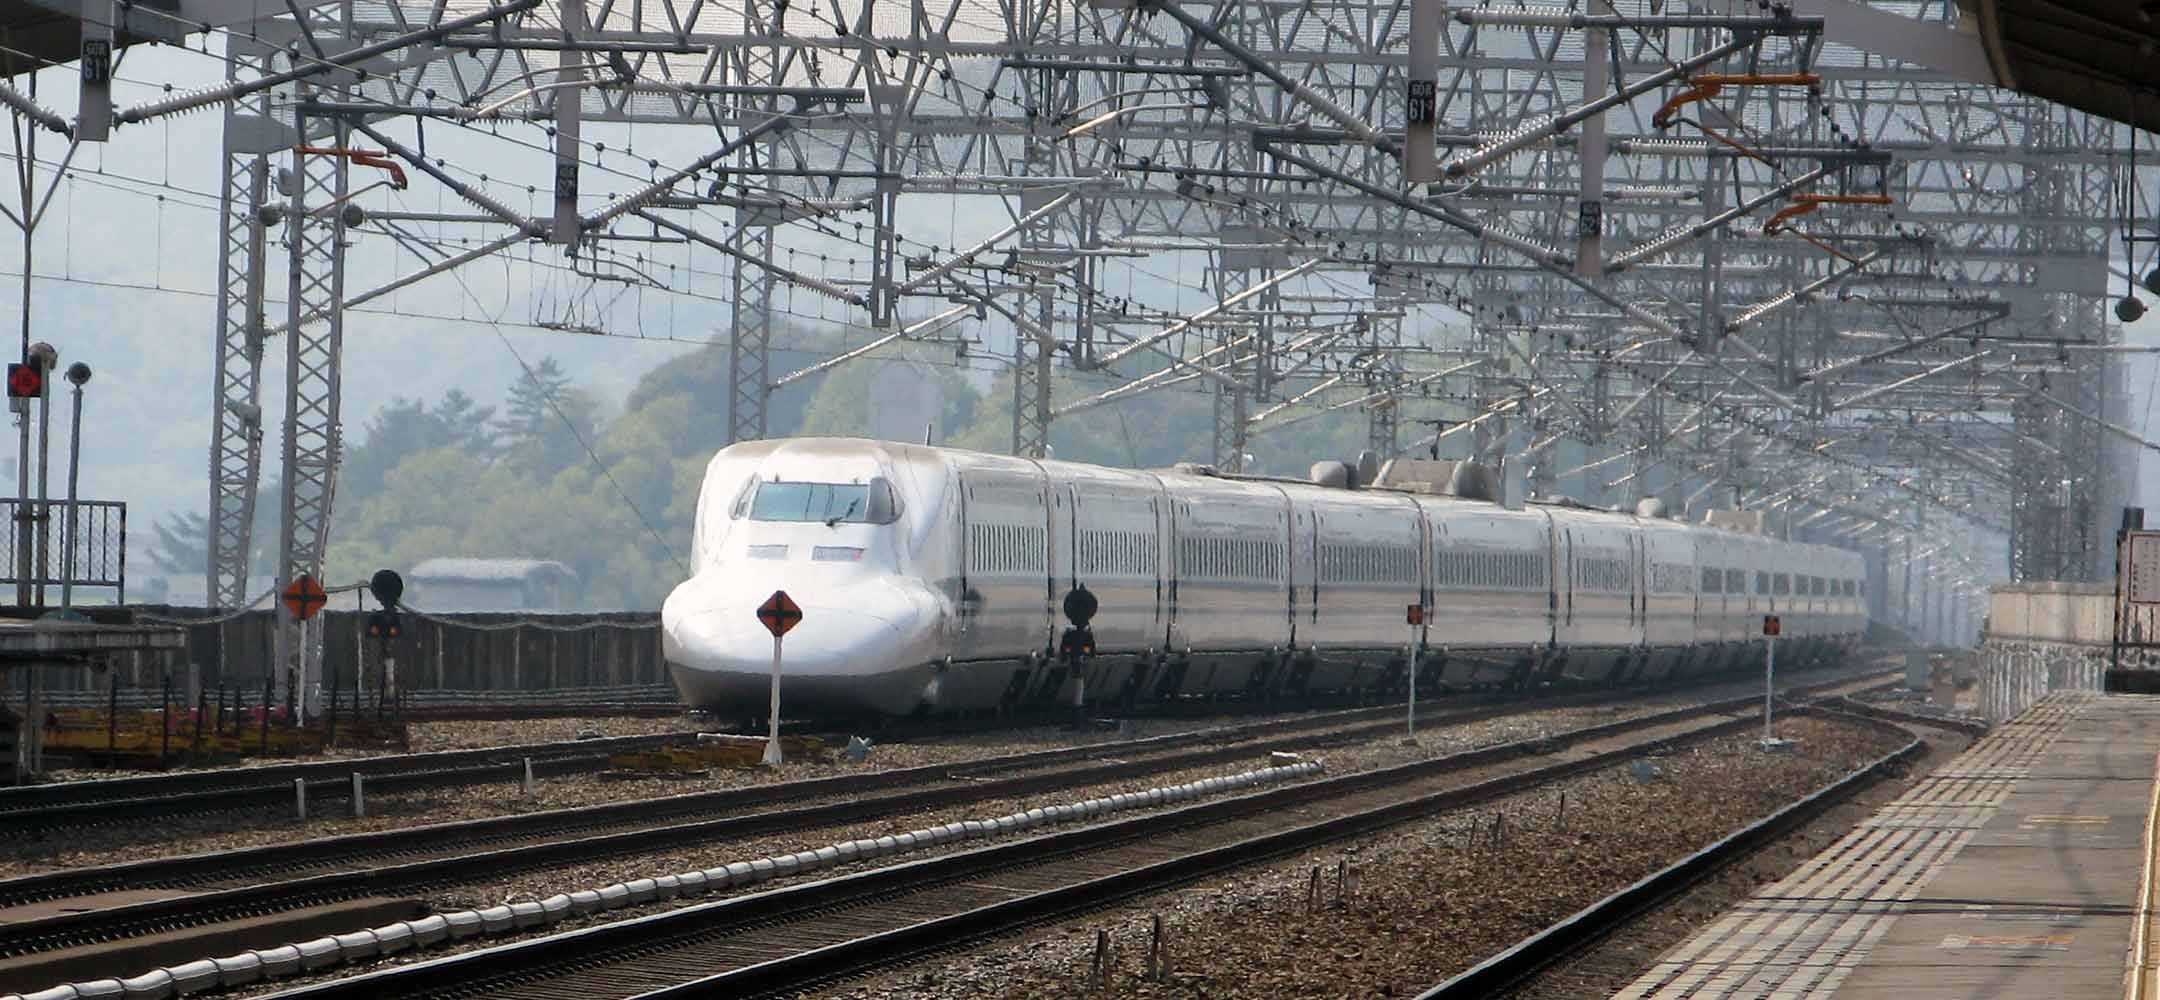 The Shinkansen bullet train